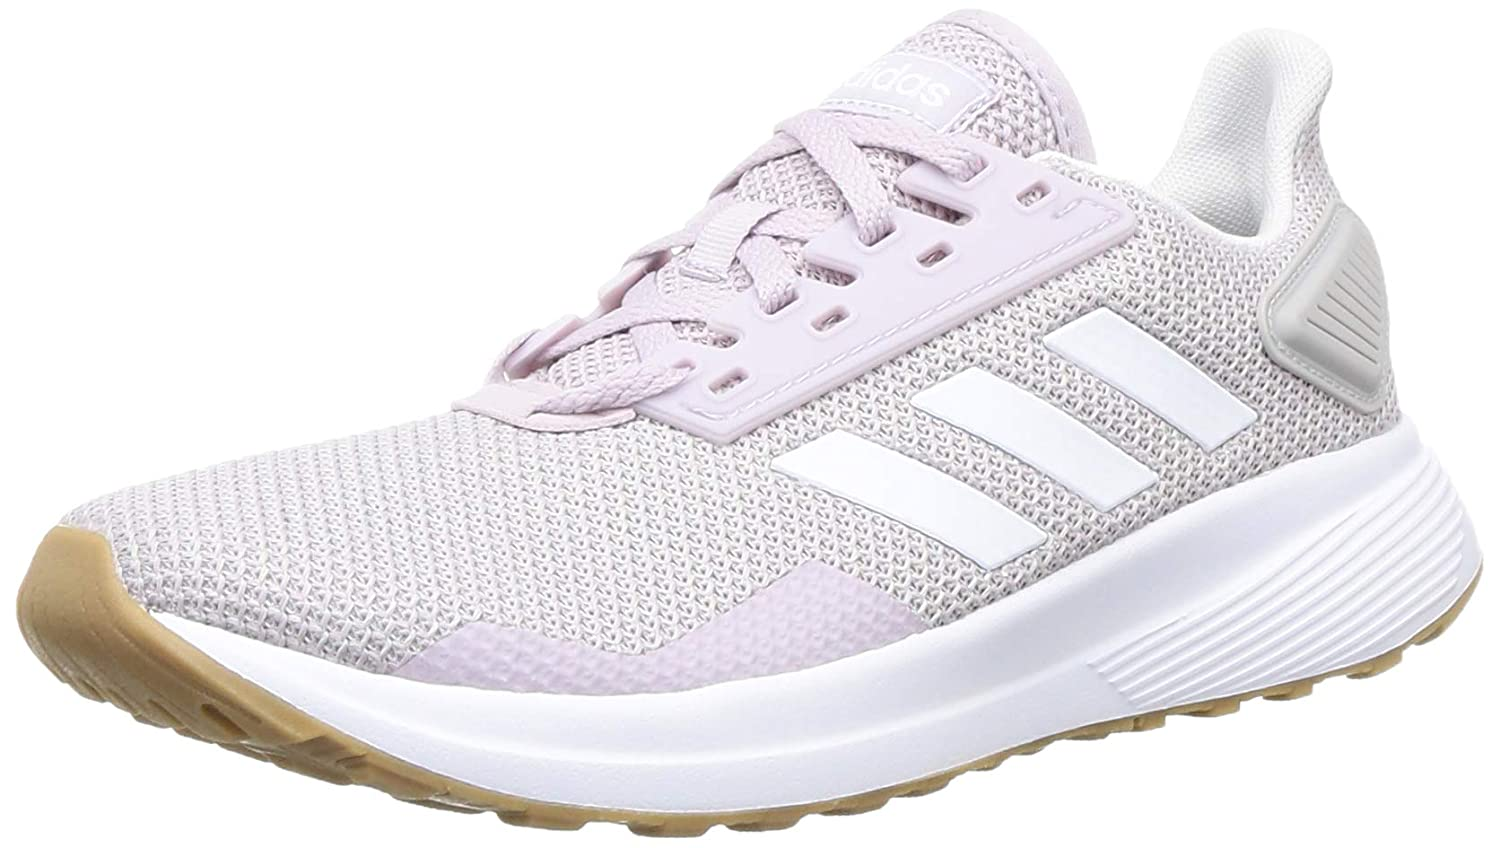 Mm Continuar cáscara  Buy Adidas Women's Mauve Boat Shoes - 6 UK (39 EU) (EE8351) at Amazon.in